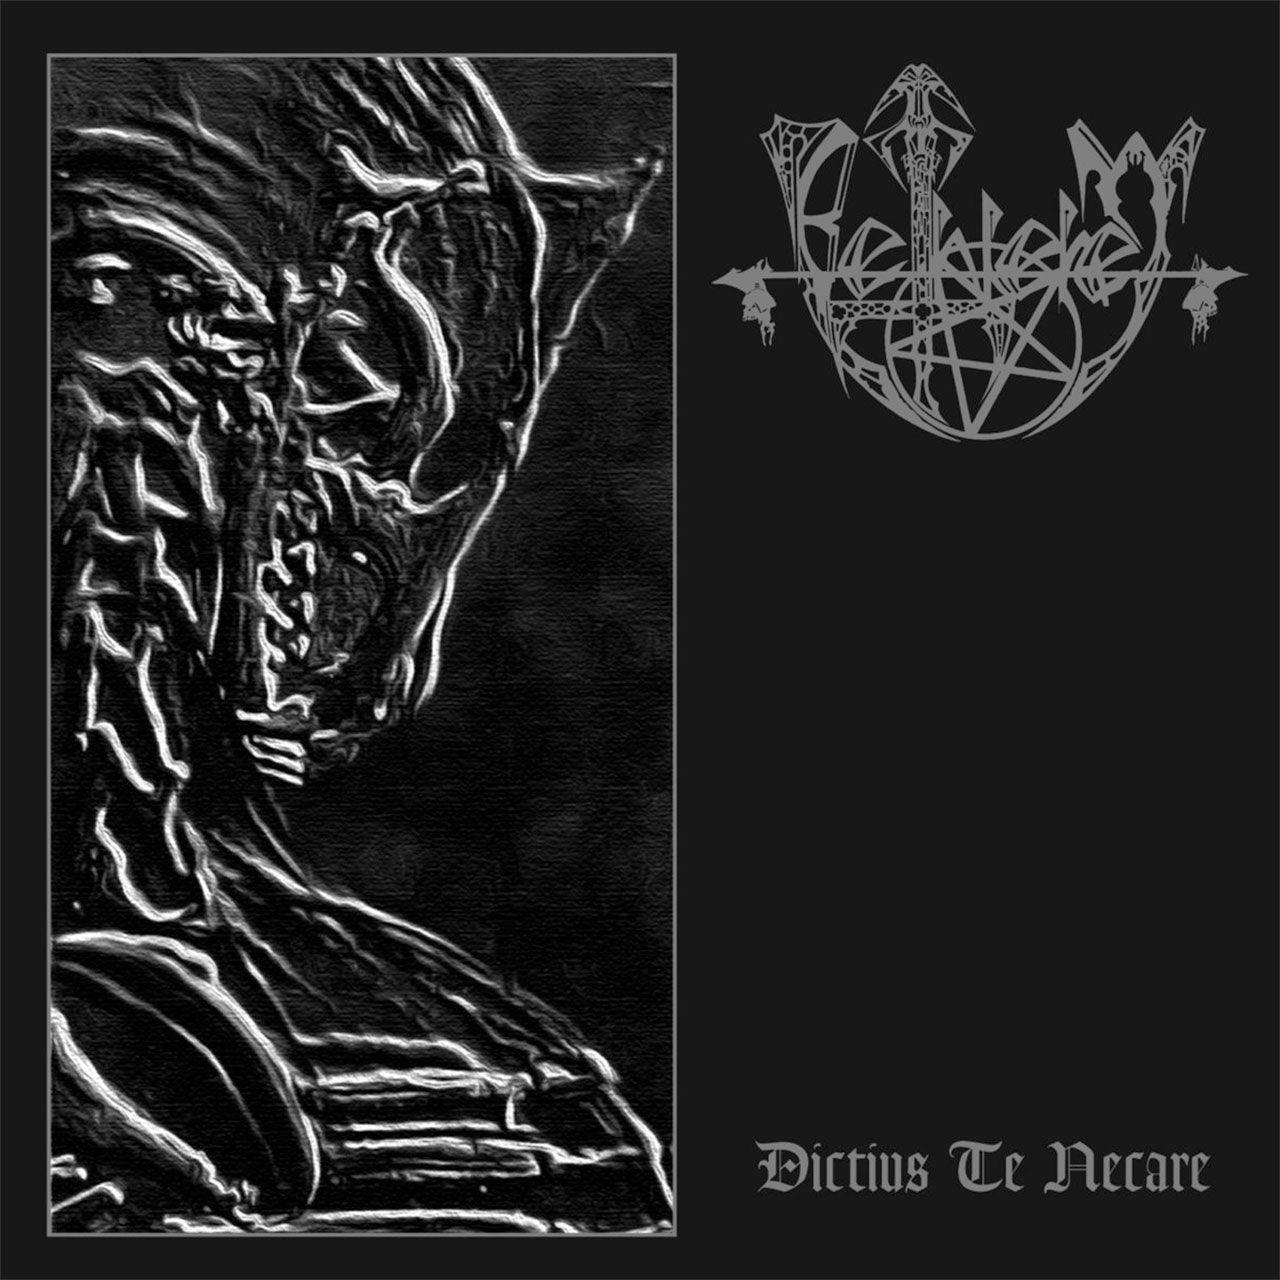 Bethlehem - Dictius Te Necare (2017 Reissue) (Digipak CD)